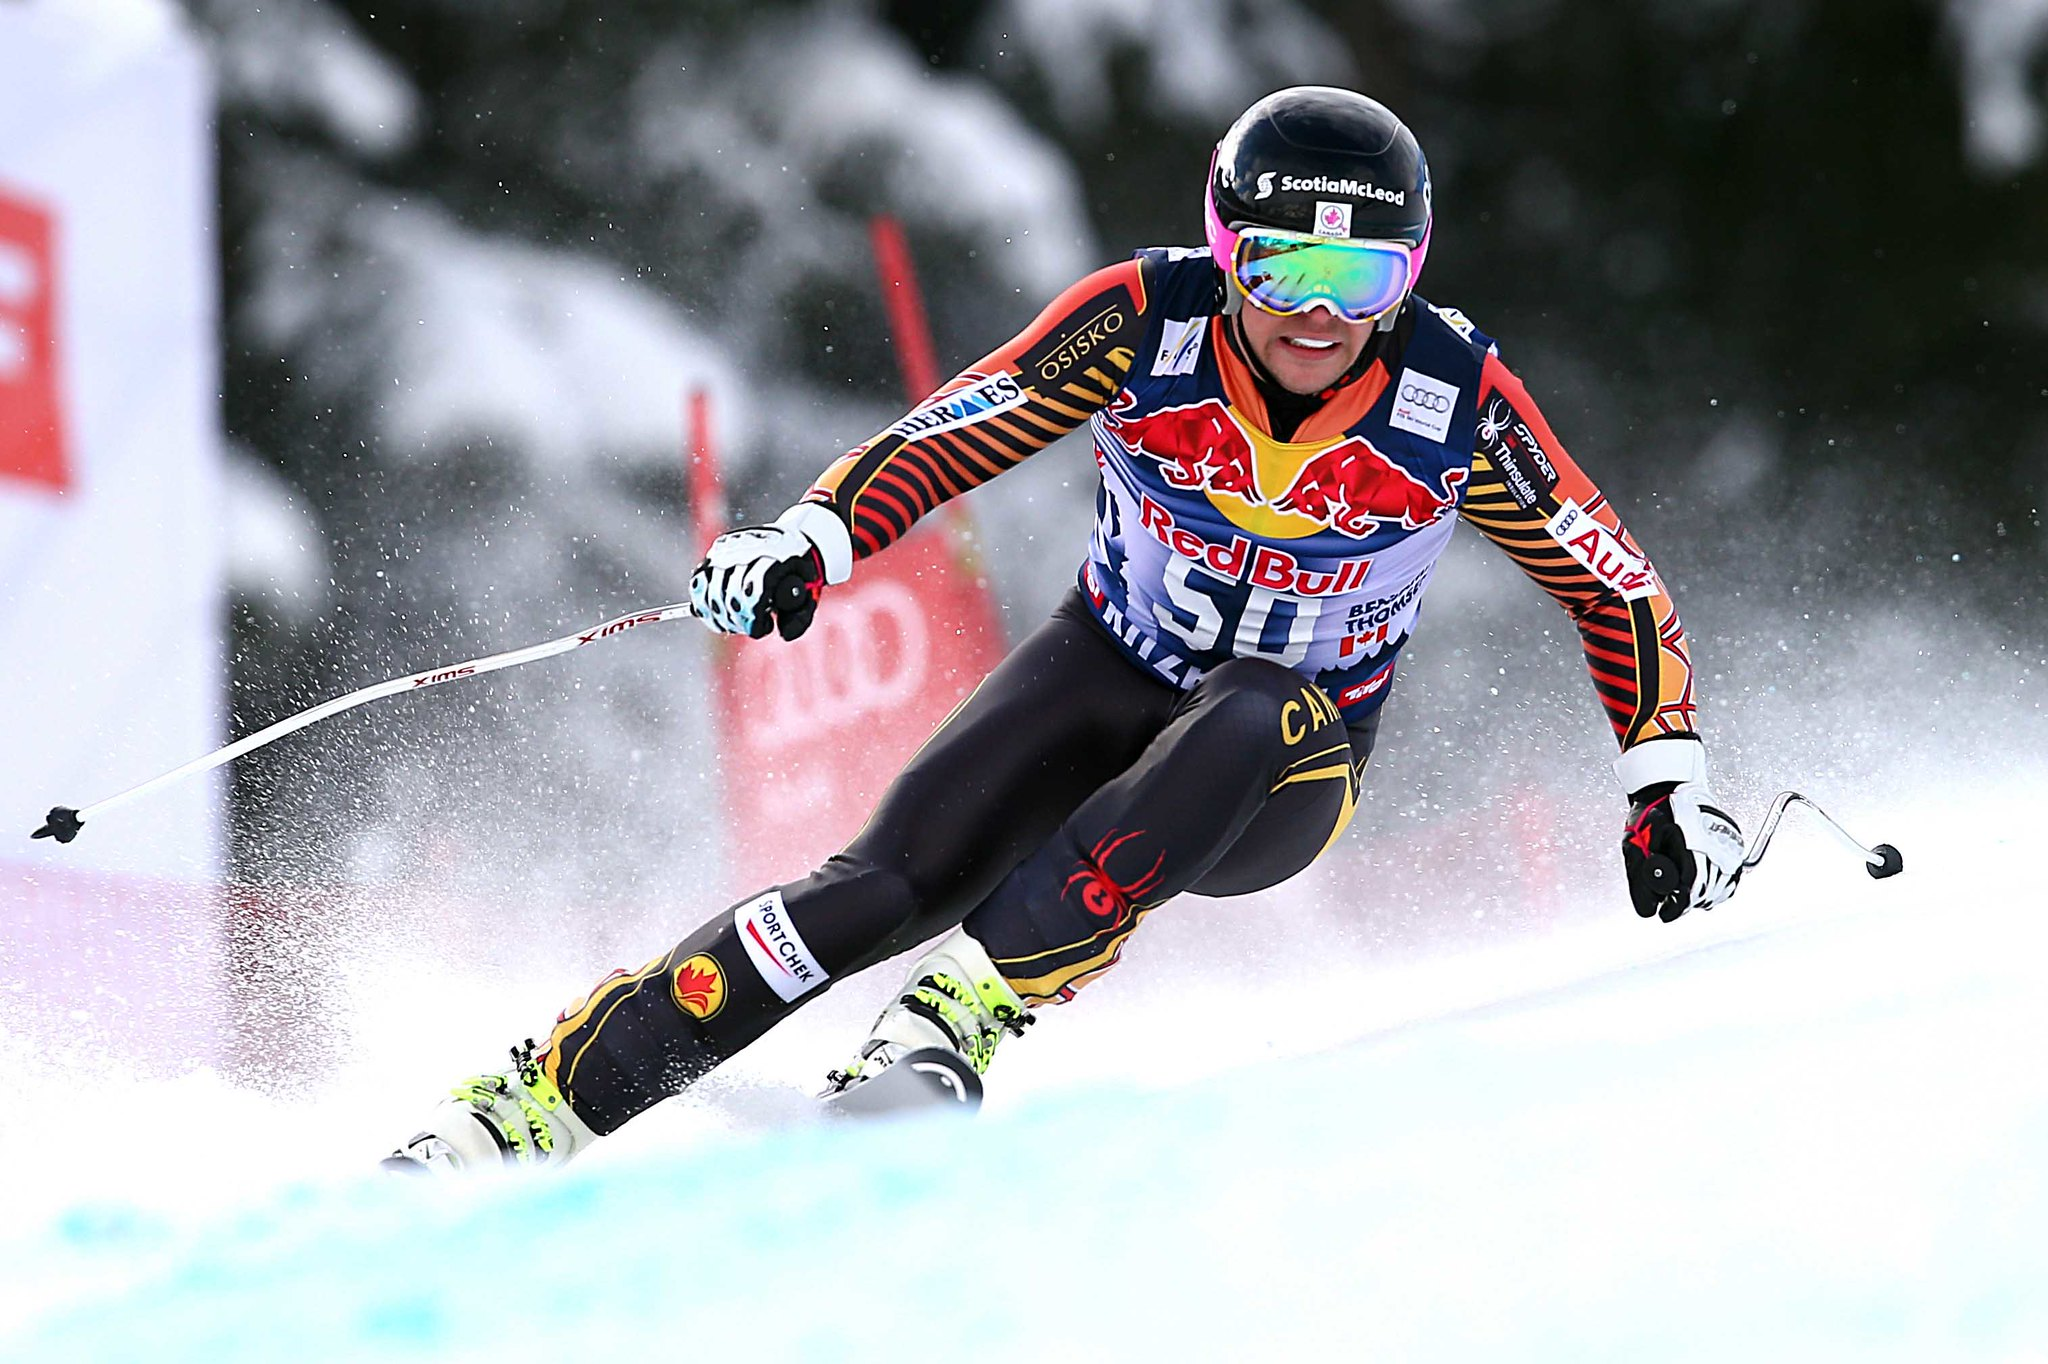 Ben Thomsen with a breakthrough 12th-place finish in the legendary Kitzbuehel downhill.